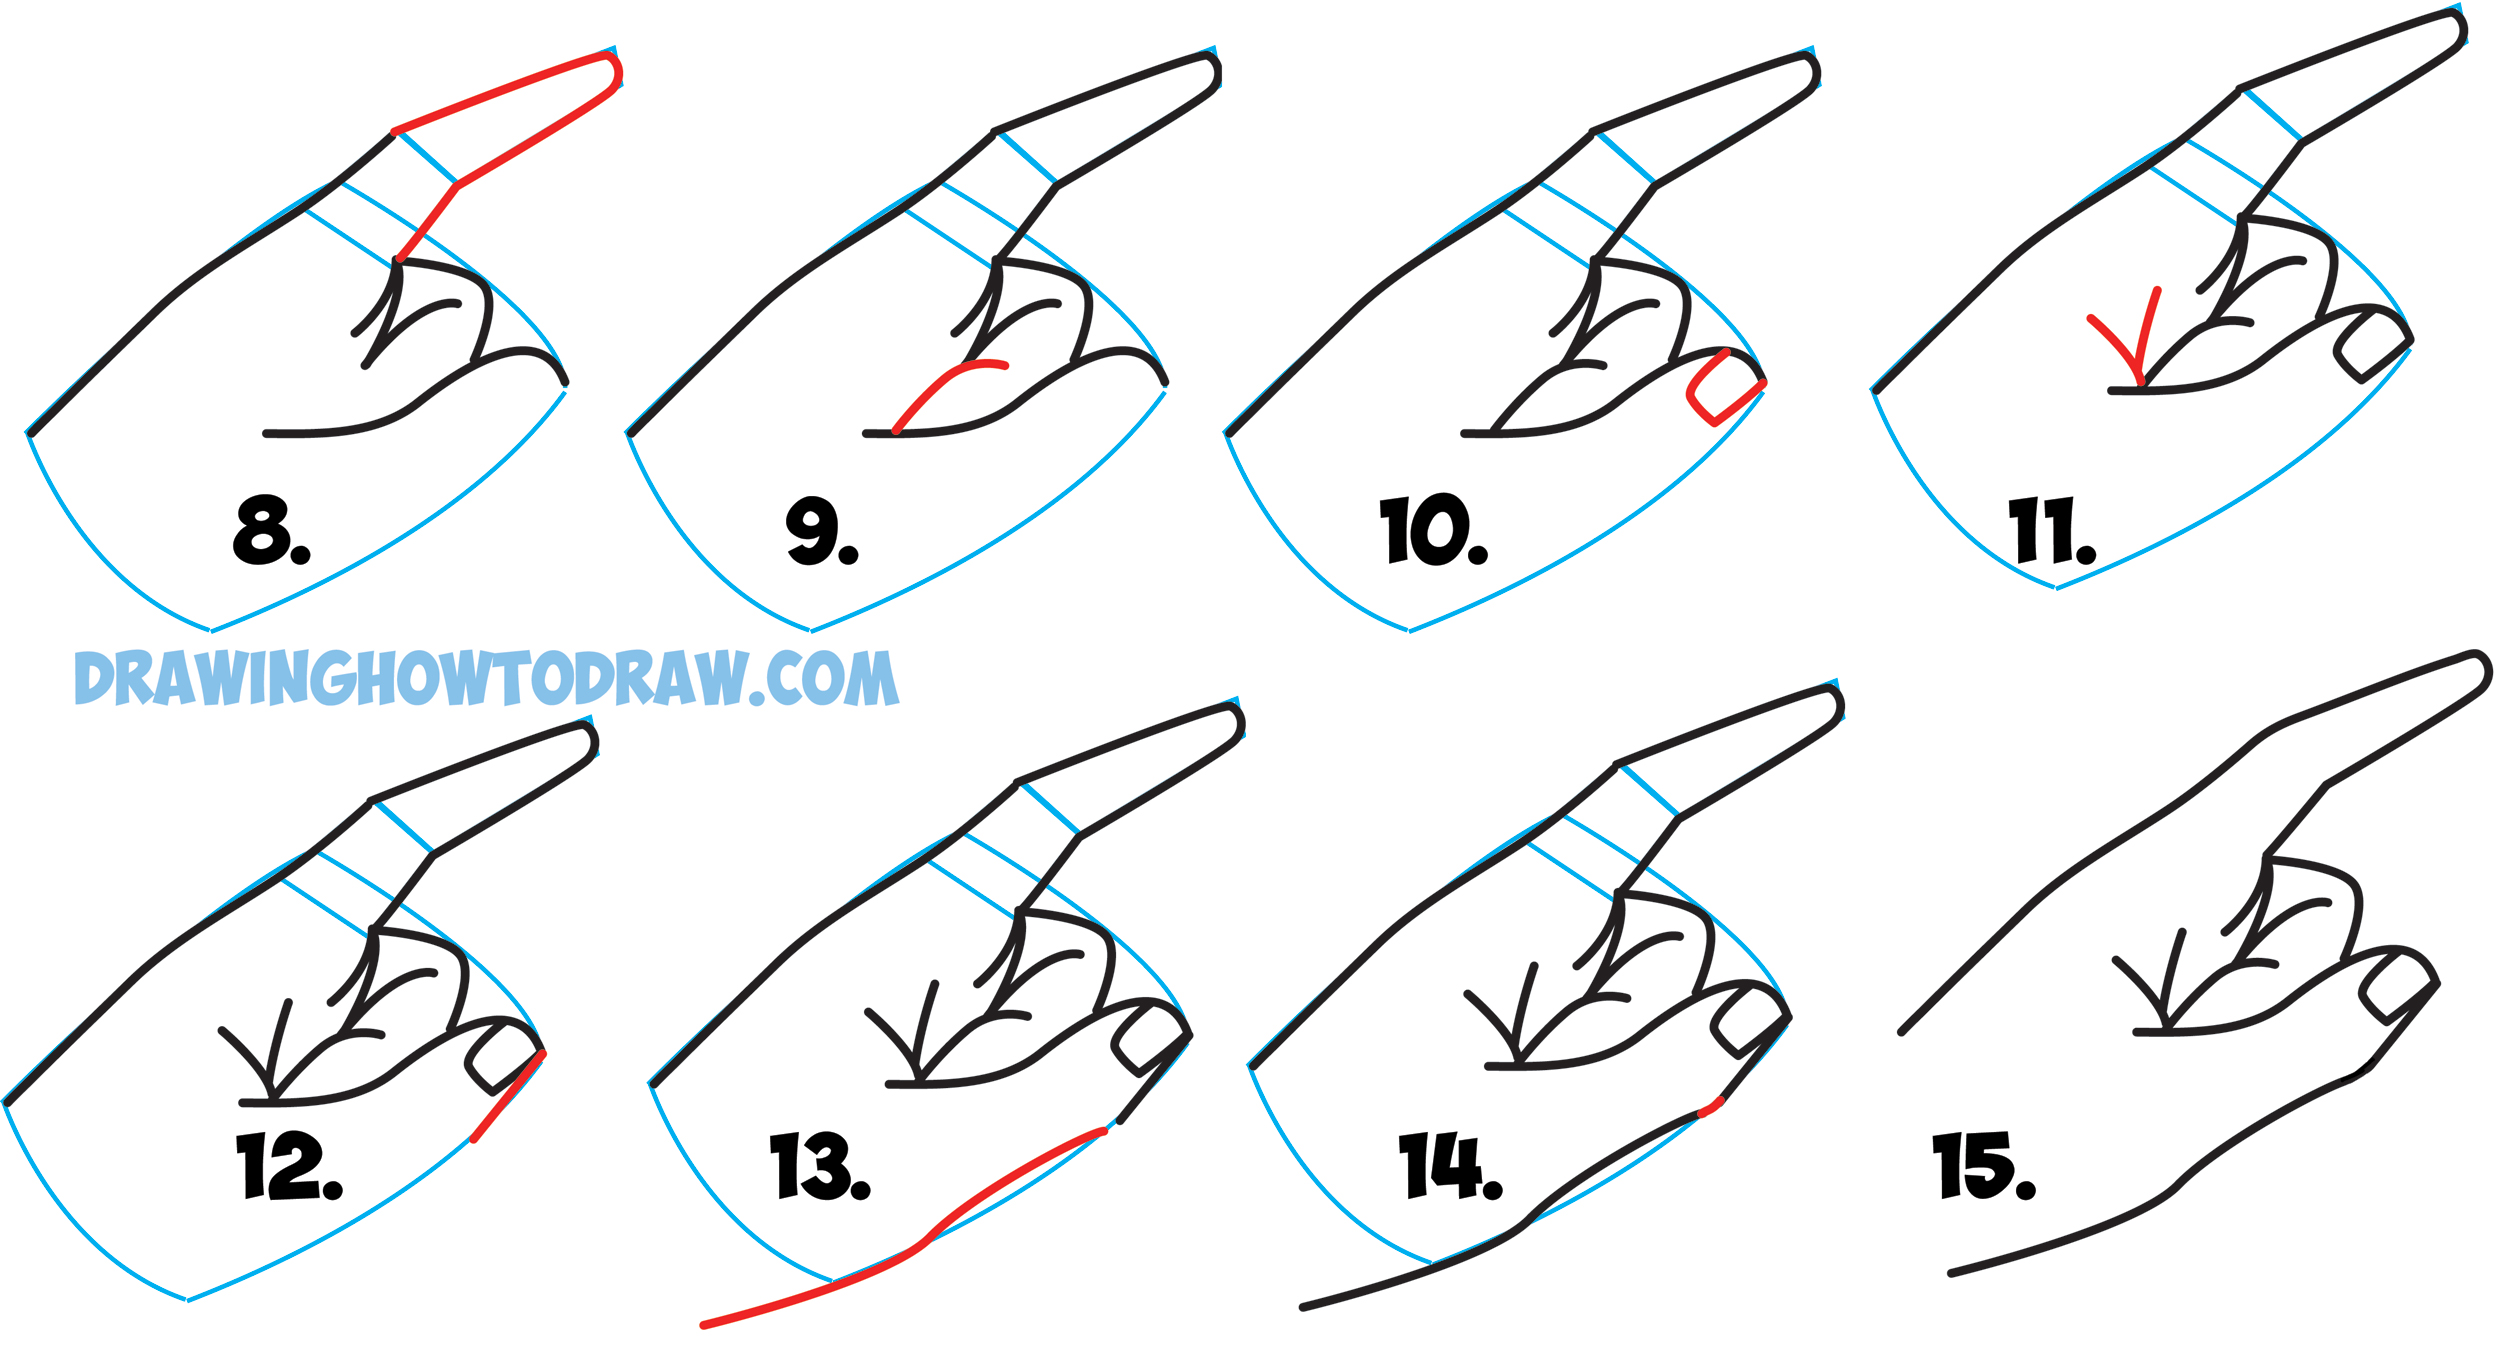 how to draw a pointing hand side view how to draw cartoon pointing fingers easy steps drawing tutorial how to draw step by step drawing tutorials how to draw a pointing hand side view